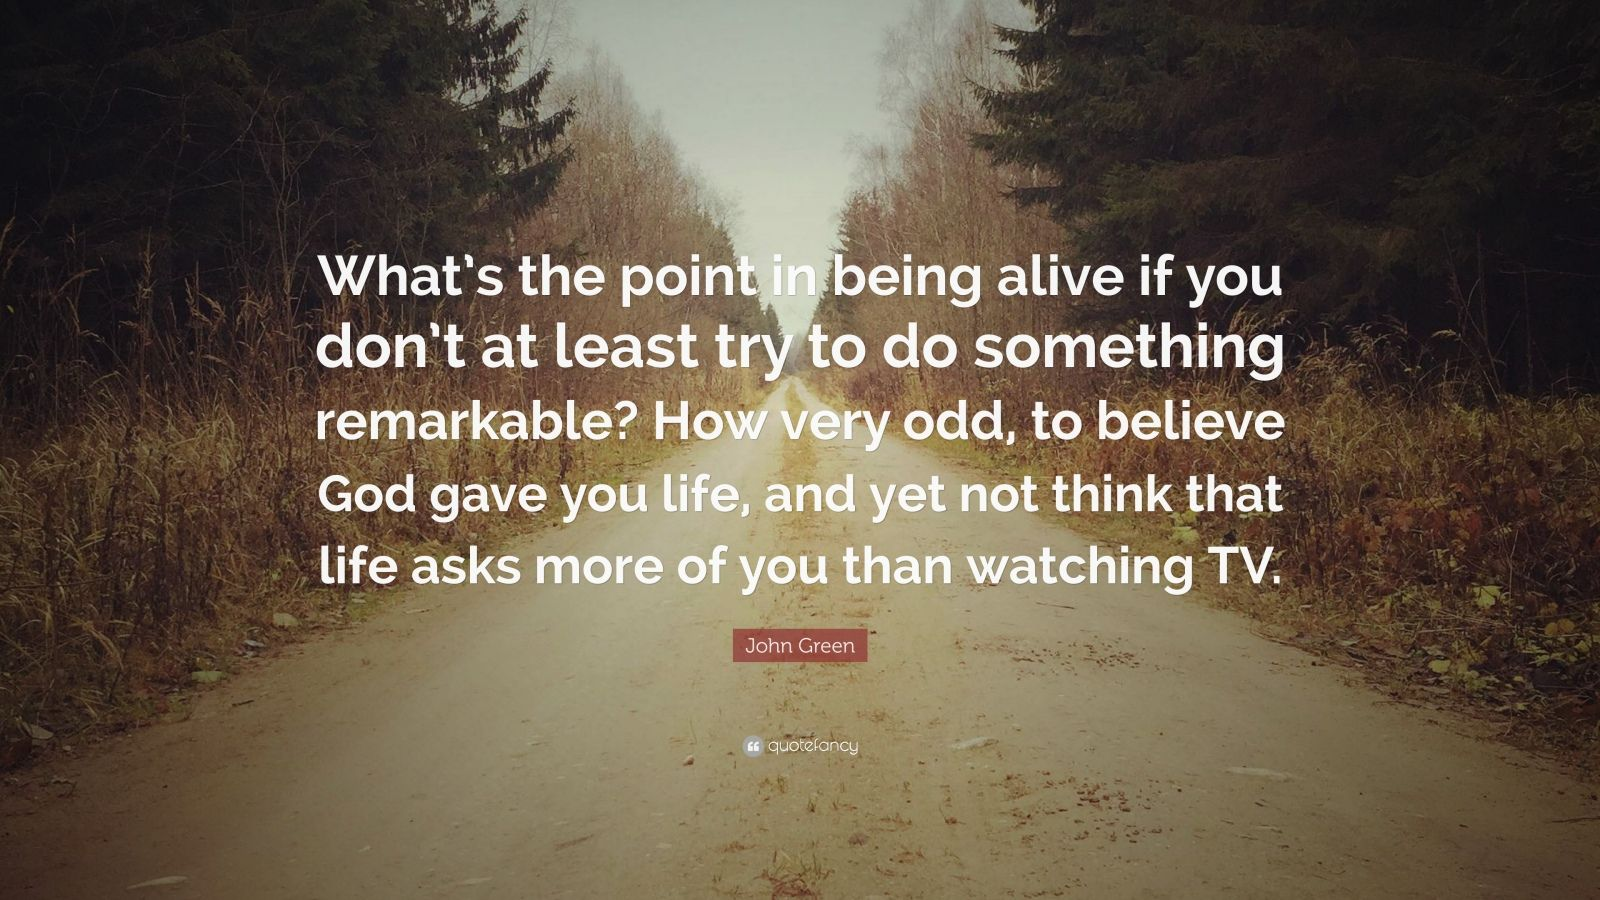 "John Green Quote: ""What's the point in being alive if you don't at least try to do something remarkable? How very odd, to believe God gave you life, and yet not think that life asks more of you than watching TV."""